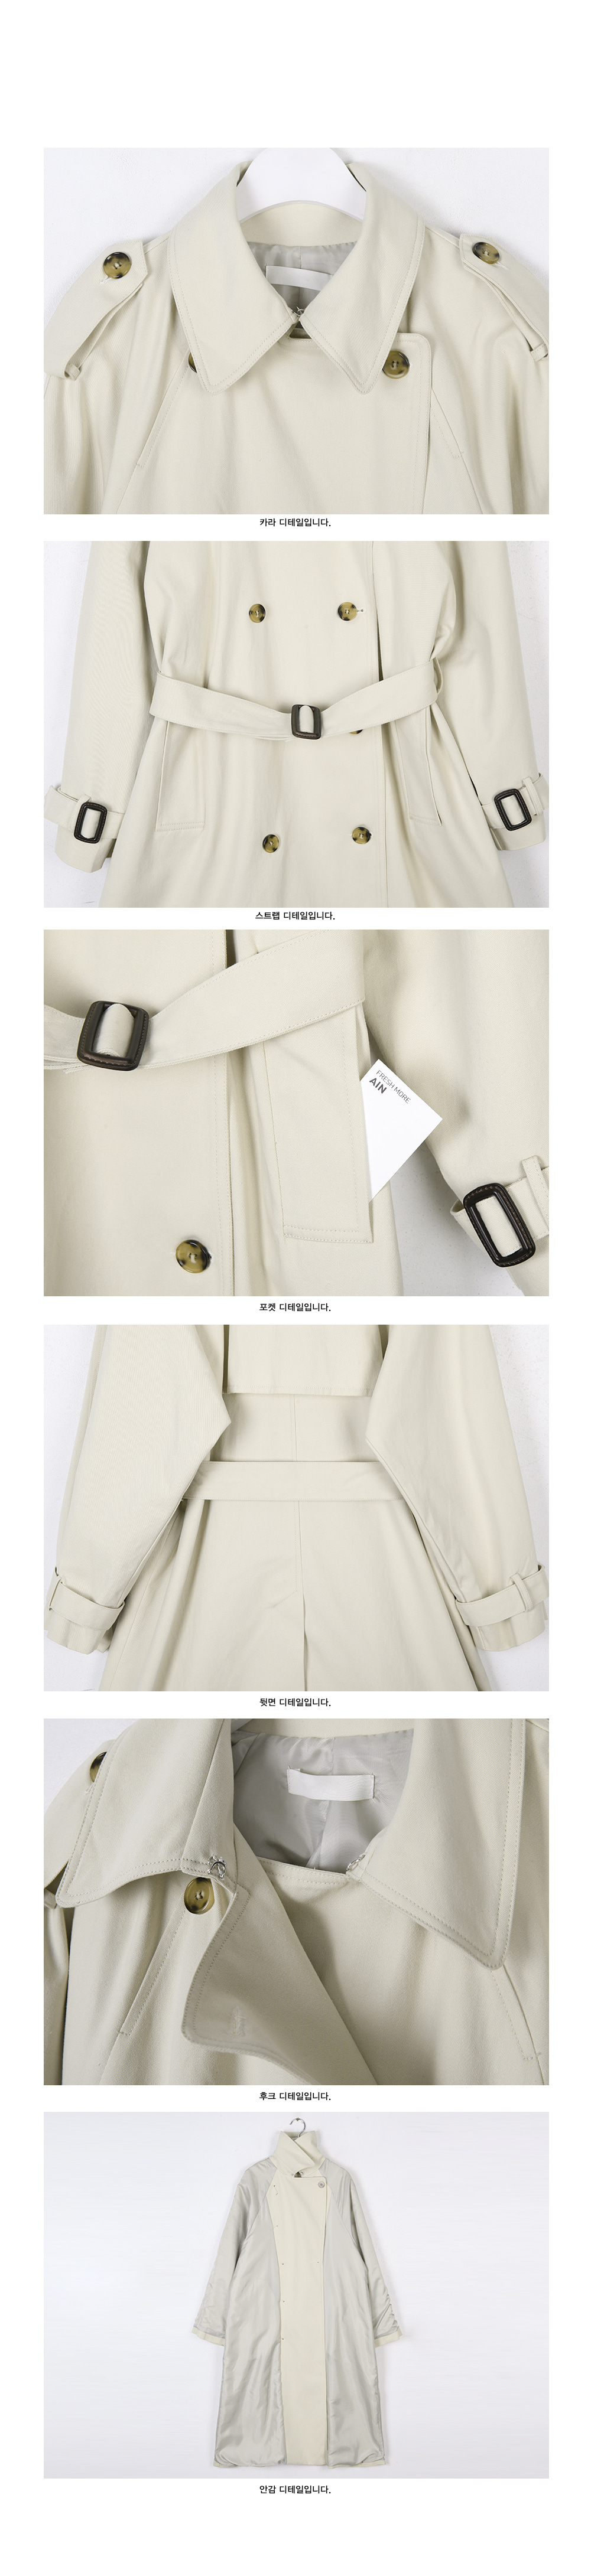 alfred trench burberry coat